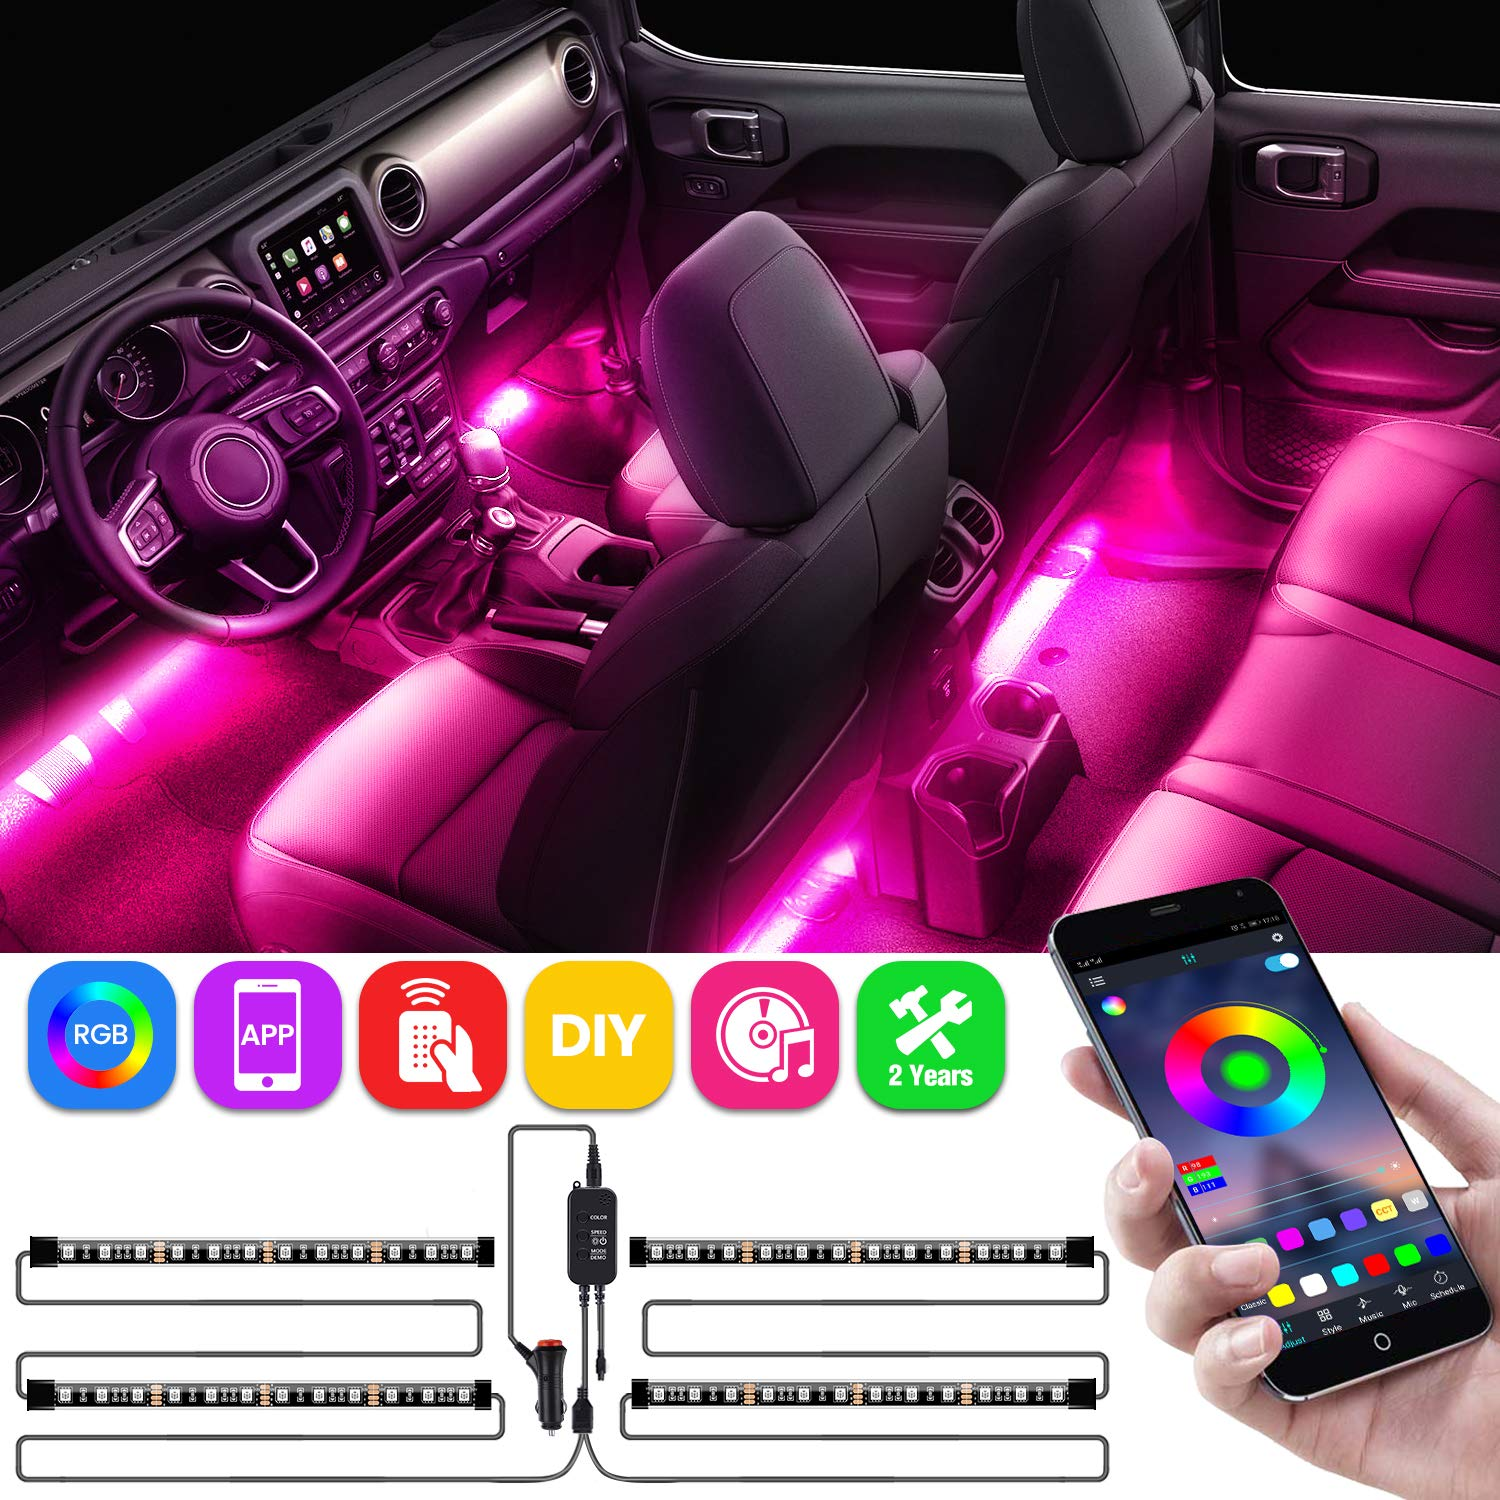 AMBOTHER Car Interior Lights, LED Strip RGB APP IR Controller Two-Line Design 4PCS 48 LED DIY Multicolor Music Under Dash Waterproof Lighting Kits, Car Charger Included, DC 12V